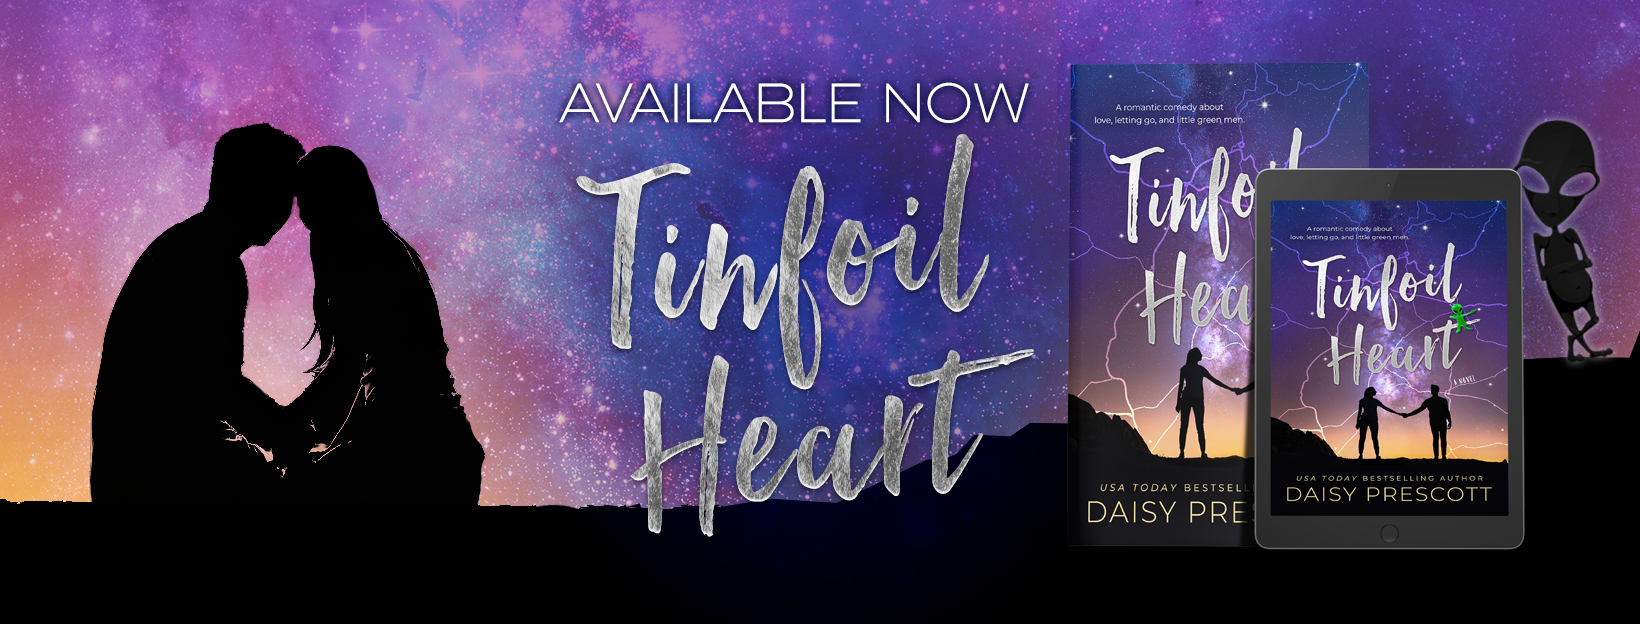 Blog Tour, Review, Teaser & Giveaway: Tinfoil Heart by Daisy Prescott